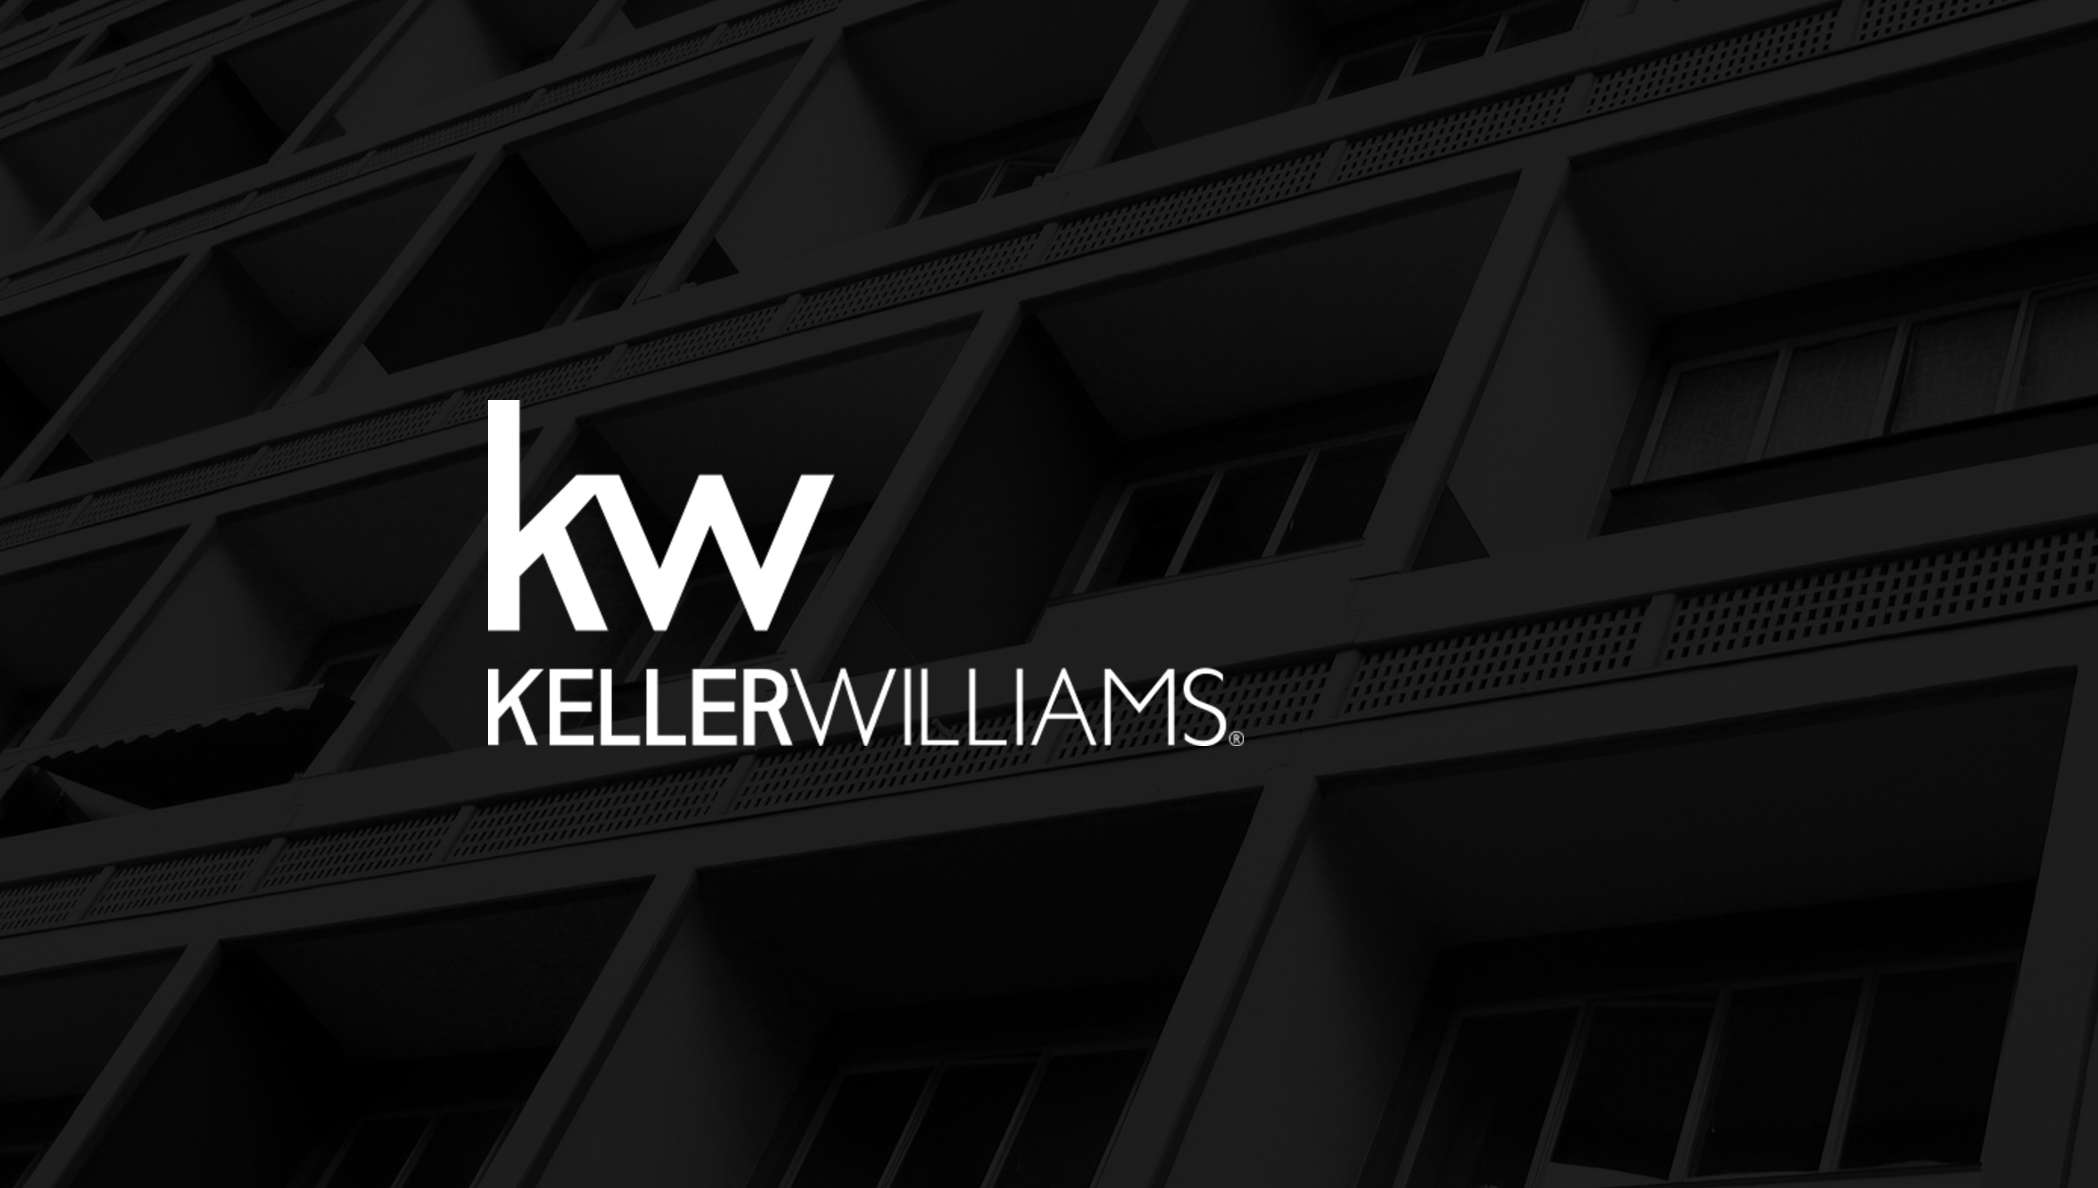 DocuSign customer Keller Williams uses Rooms for Real Estate.